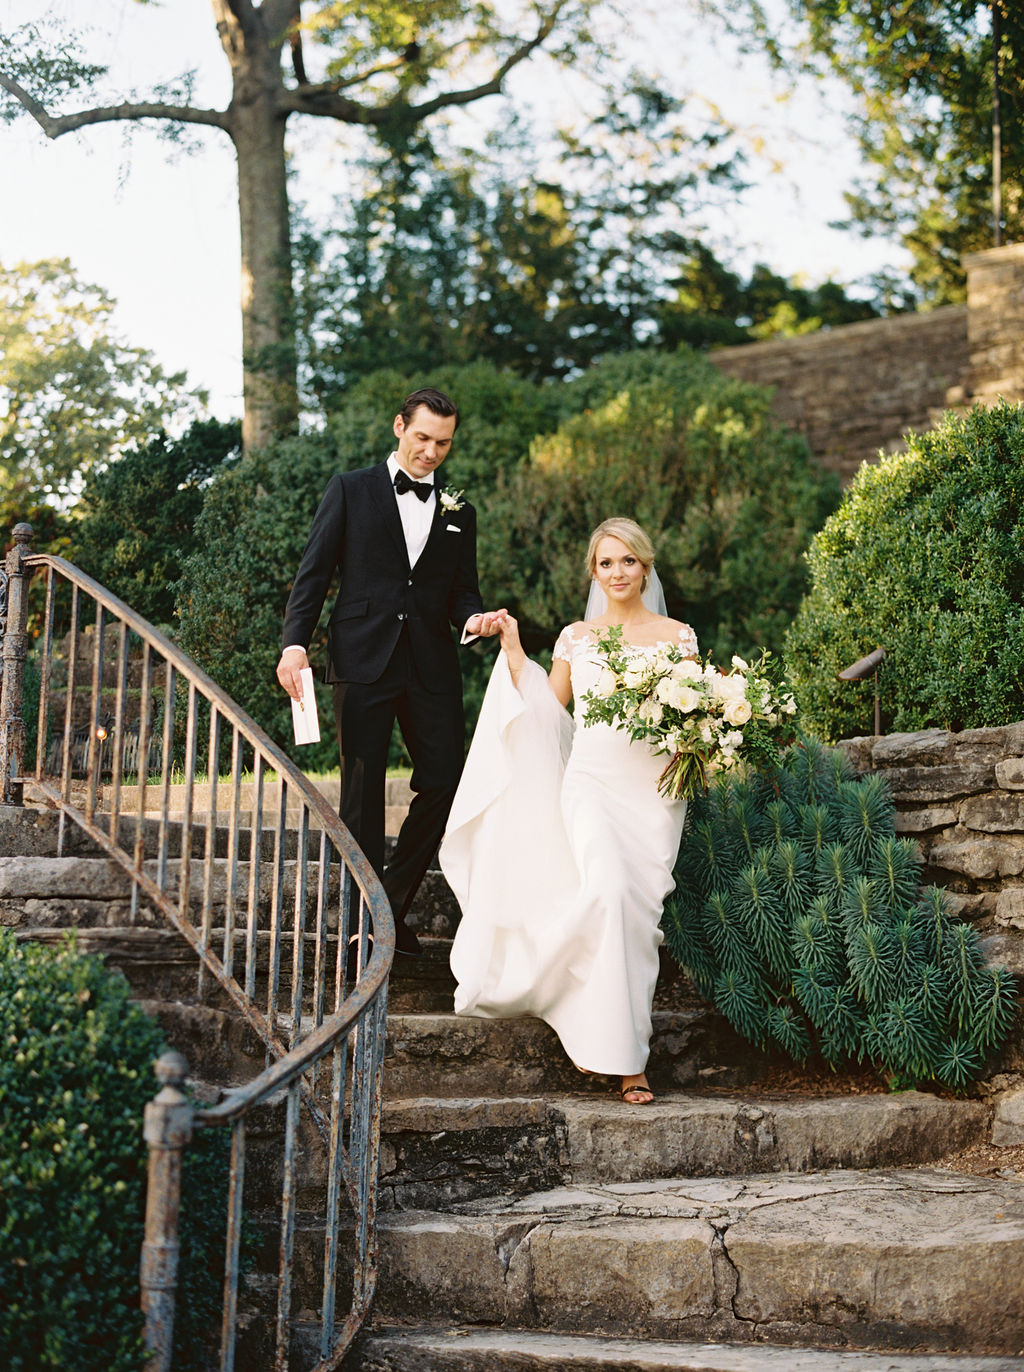 Botanic Garden Wedding with all white florals with lush greenery. Nashville Floral Designer.